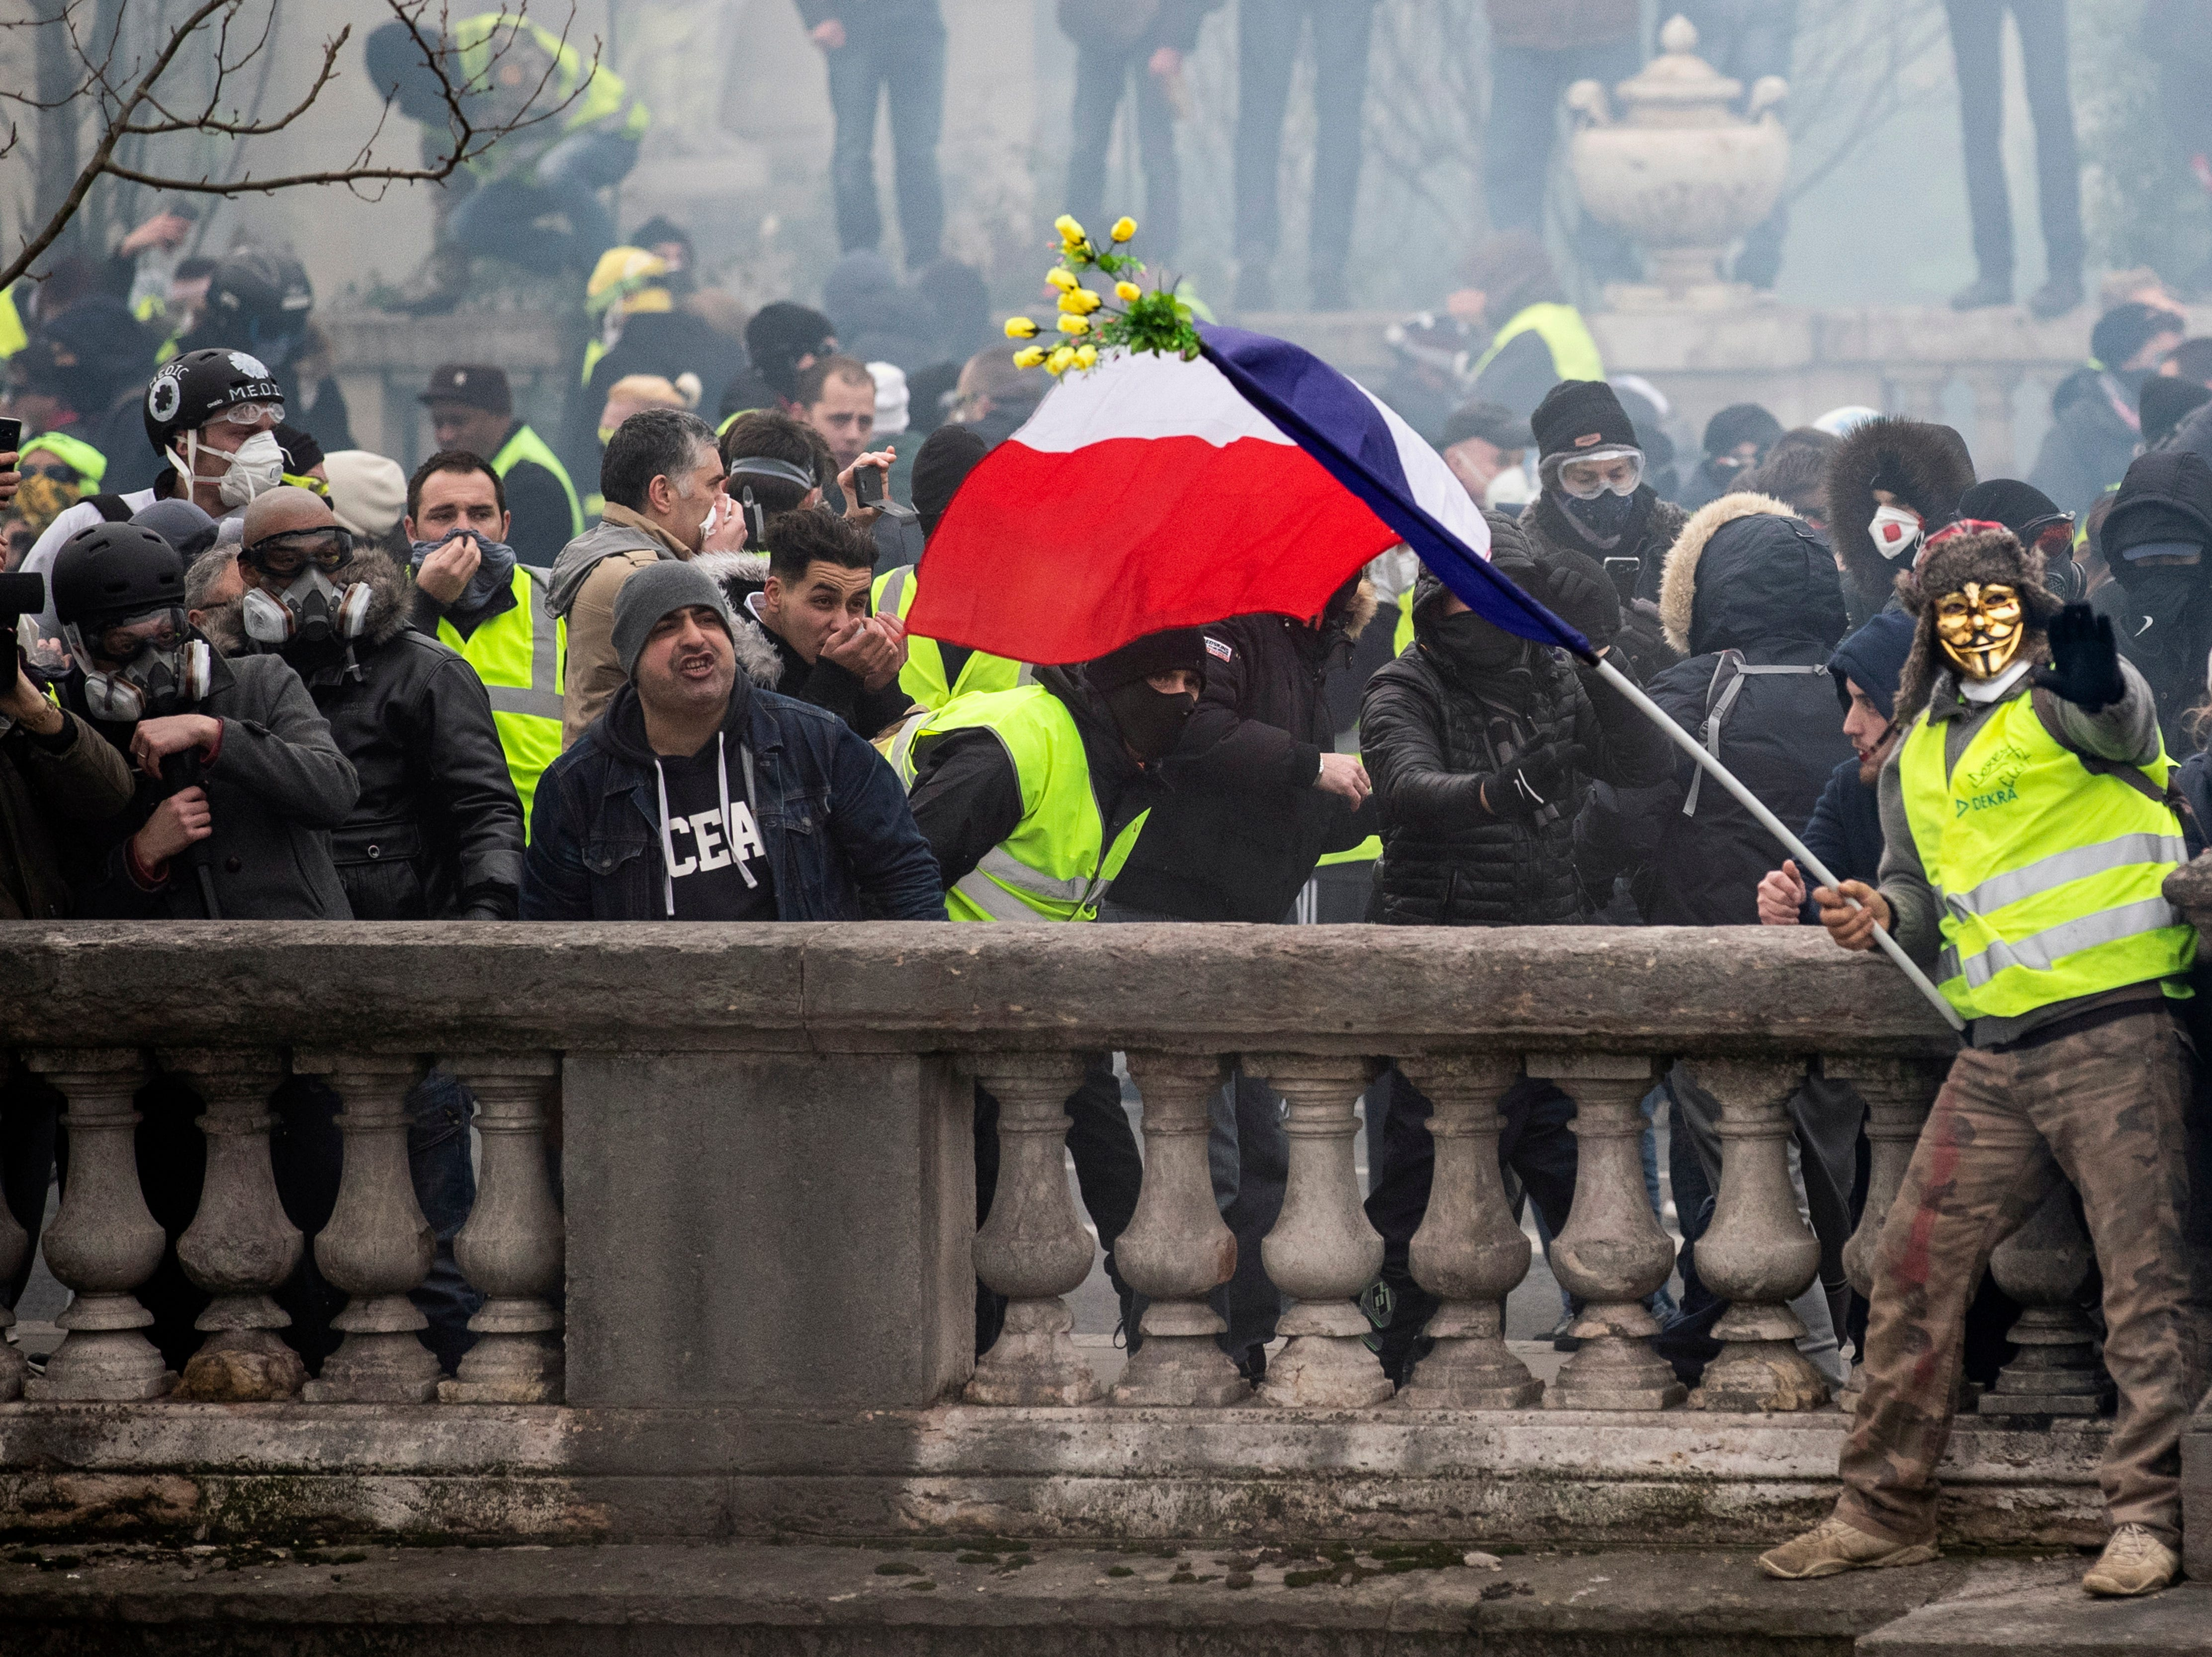 Protesters try to cross bridges over the Seine river during a 'Yellow Vests' protest in Paris, France on Jan. 5, 2019. The so-called 'gilets jaunes' (yellow vests) is a grassroots protest movement with supporters from a wide span of the political spectrum, that originally started with protest across the nation in late 2018 against high fuel prices. The movement in the meantime also protests the French government's tax reforms, the increasing costs of living and some even call for the resignation of French president Emmanuel Macron.